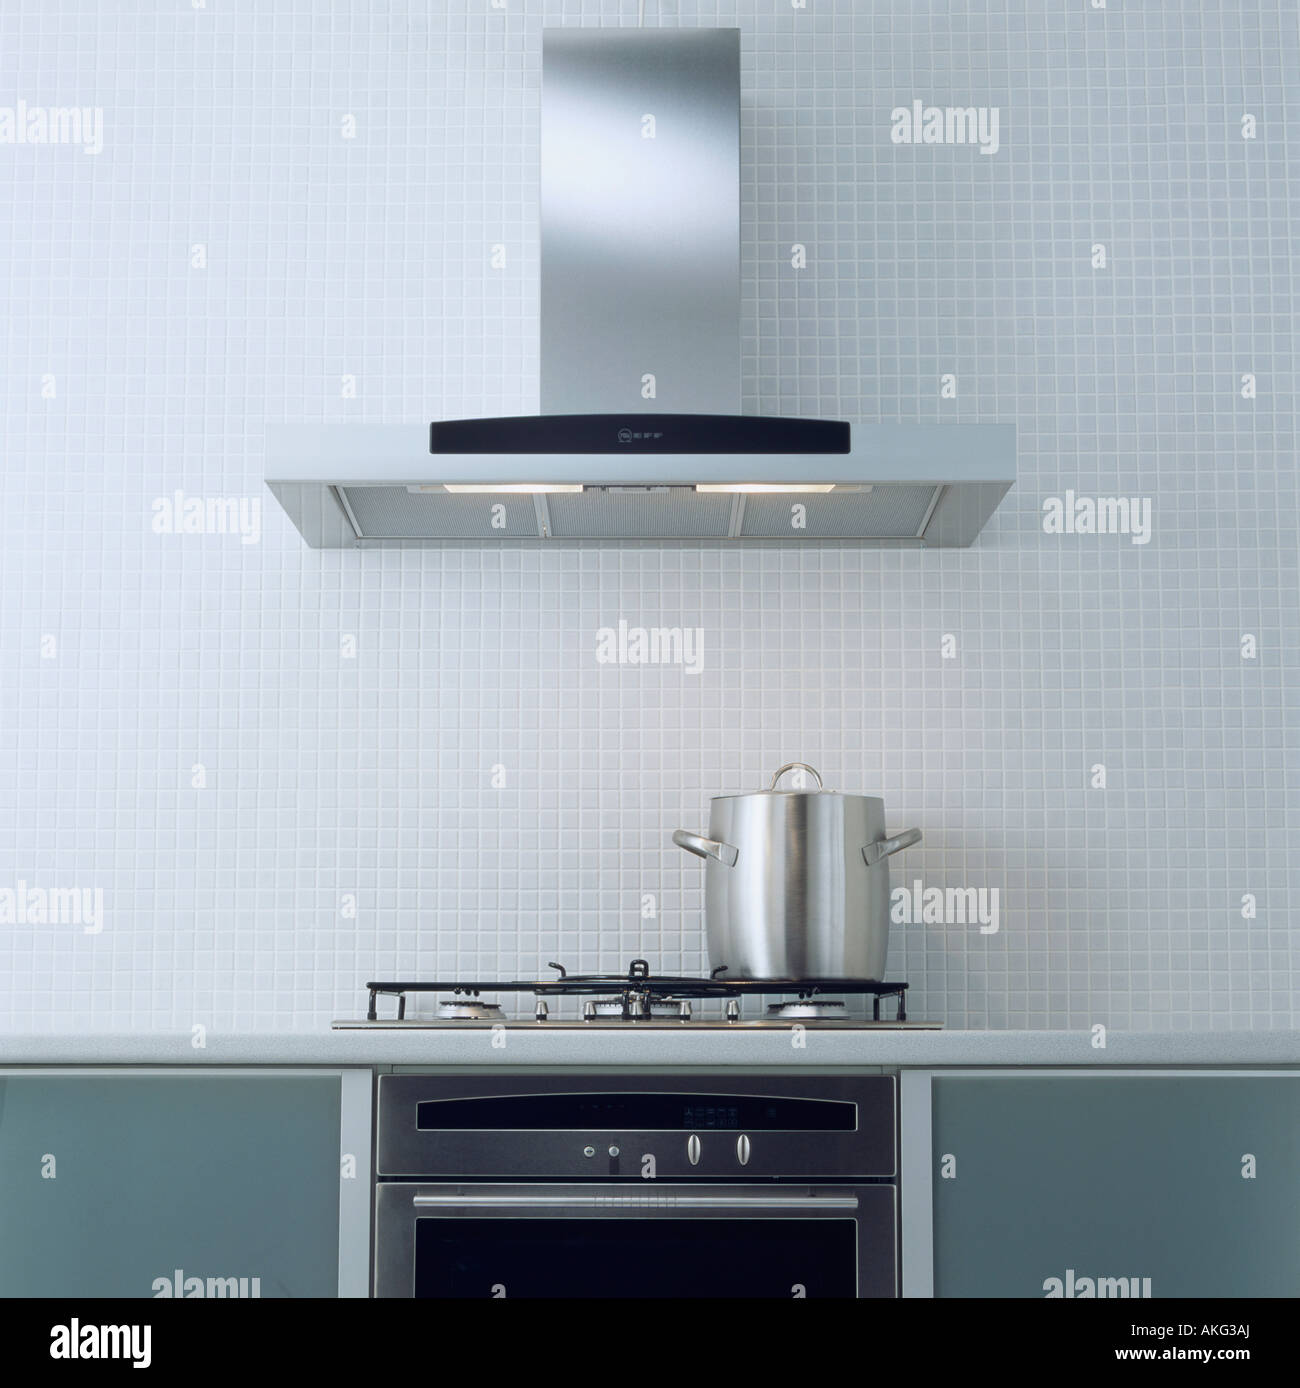 Stainless steel extractor fan above pan on hob in modern kitchen ...